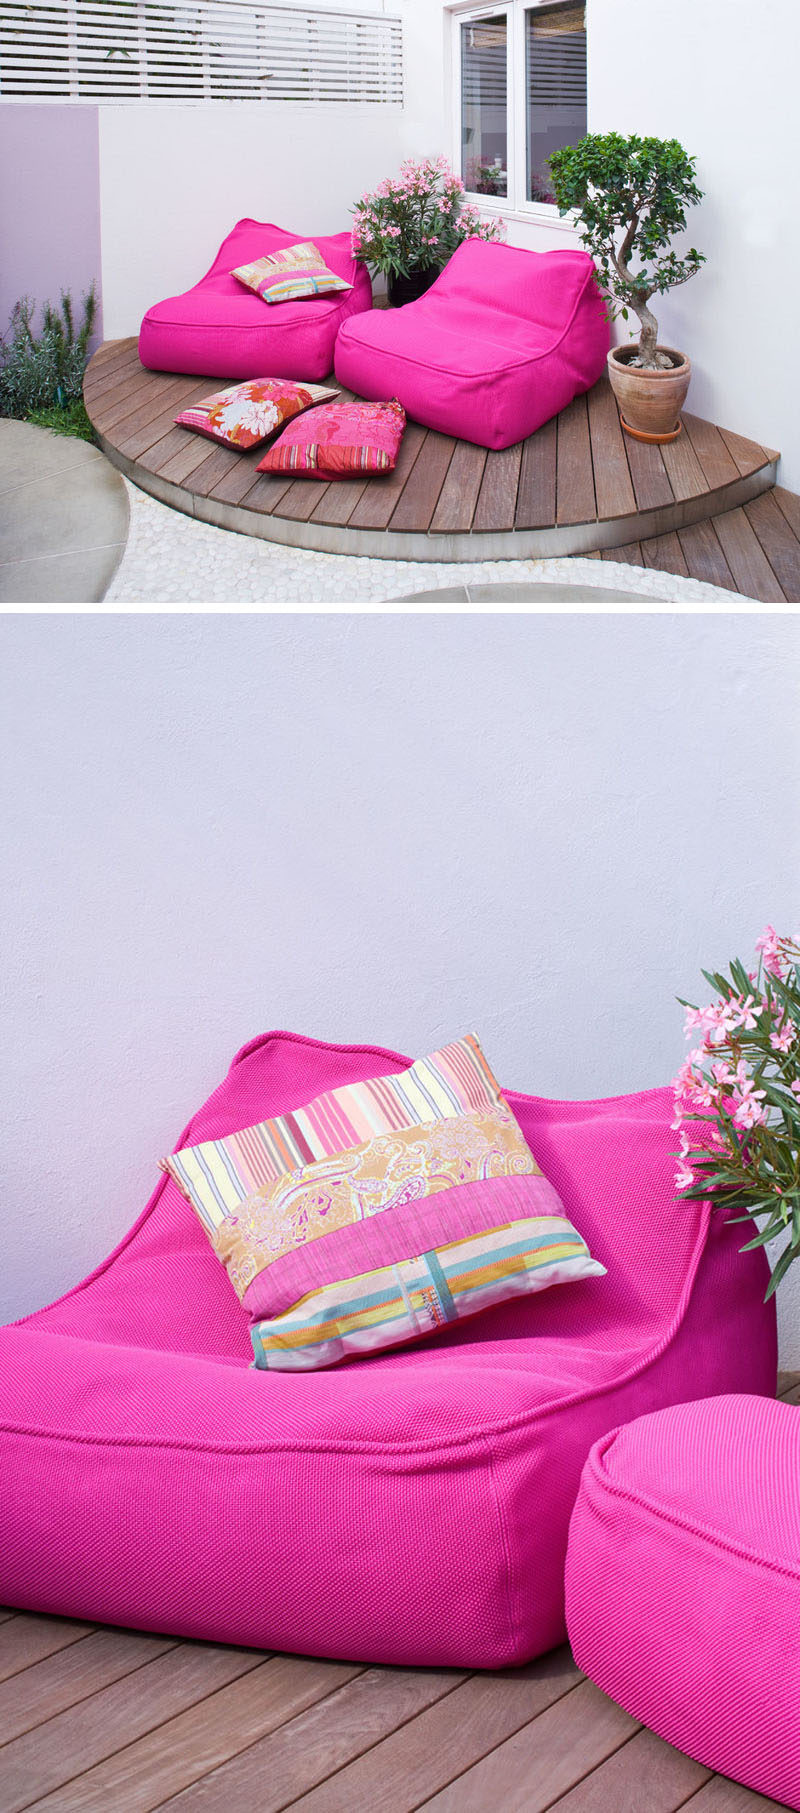 In this modern garden there's a relaxed seating area with soft, bright pink lounge chairs that sit on a raised platform.